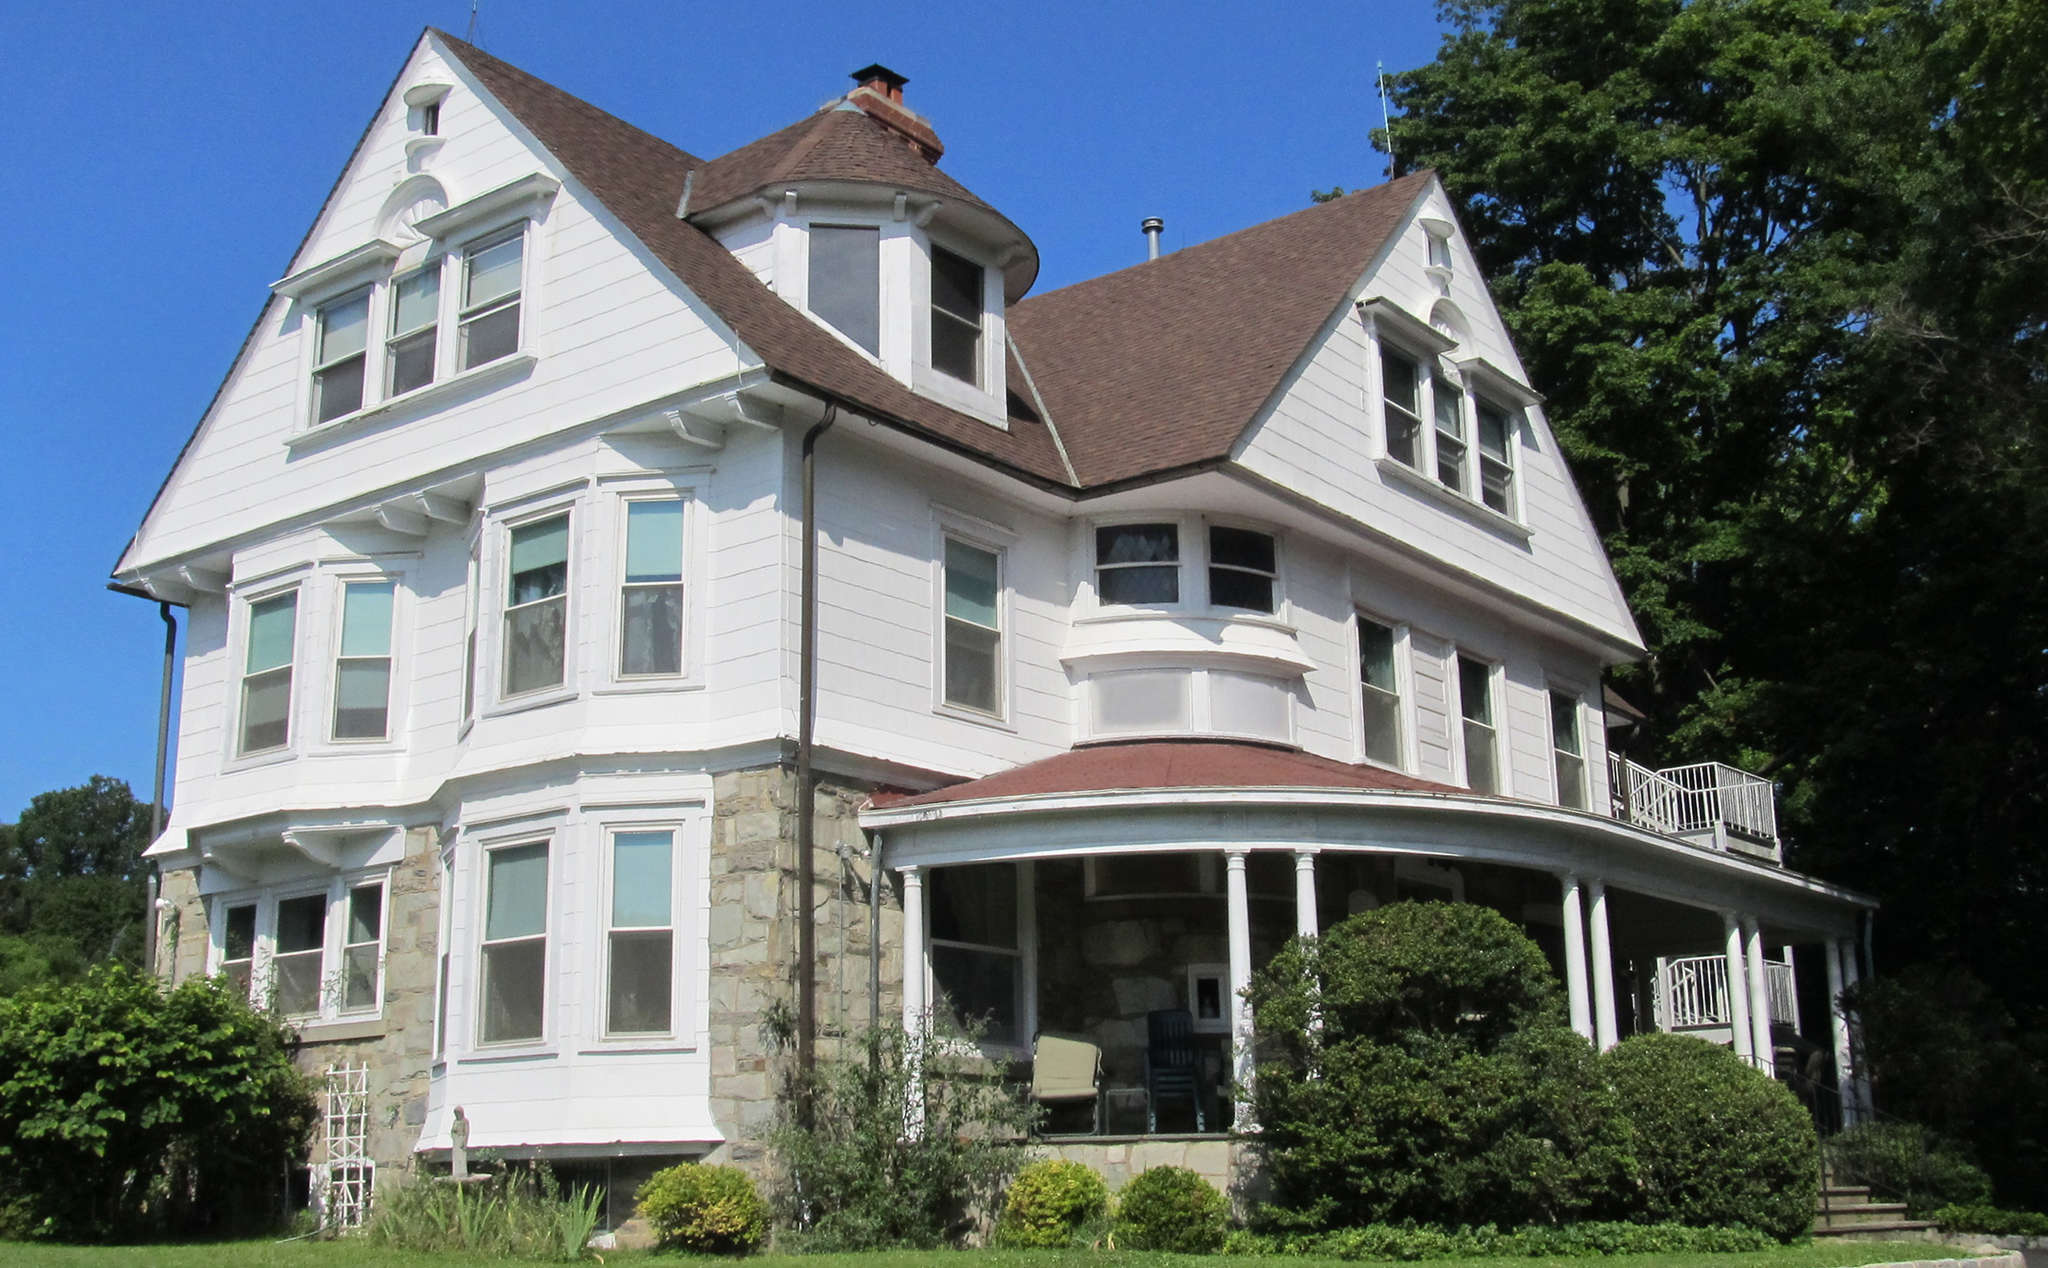 Minerva Parker Nichols´ house was a retreat for famed suffragists.